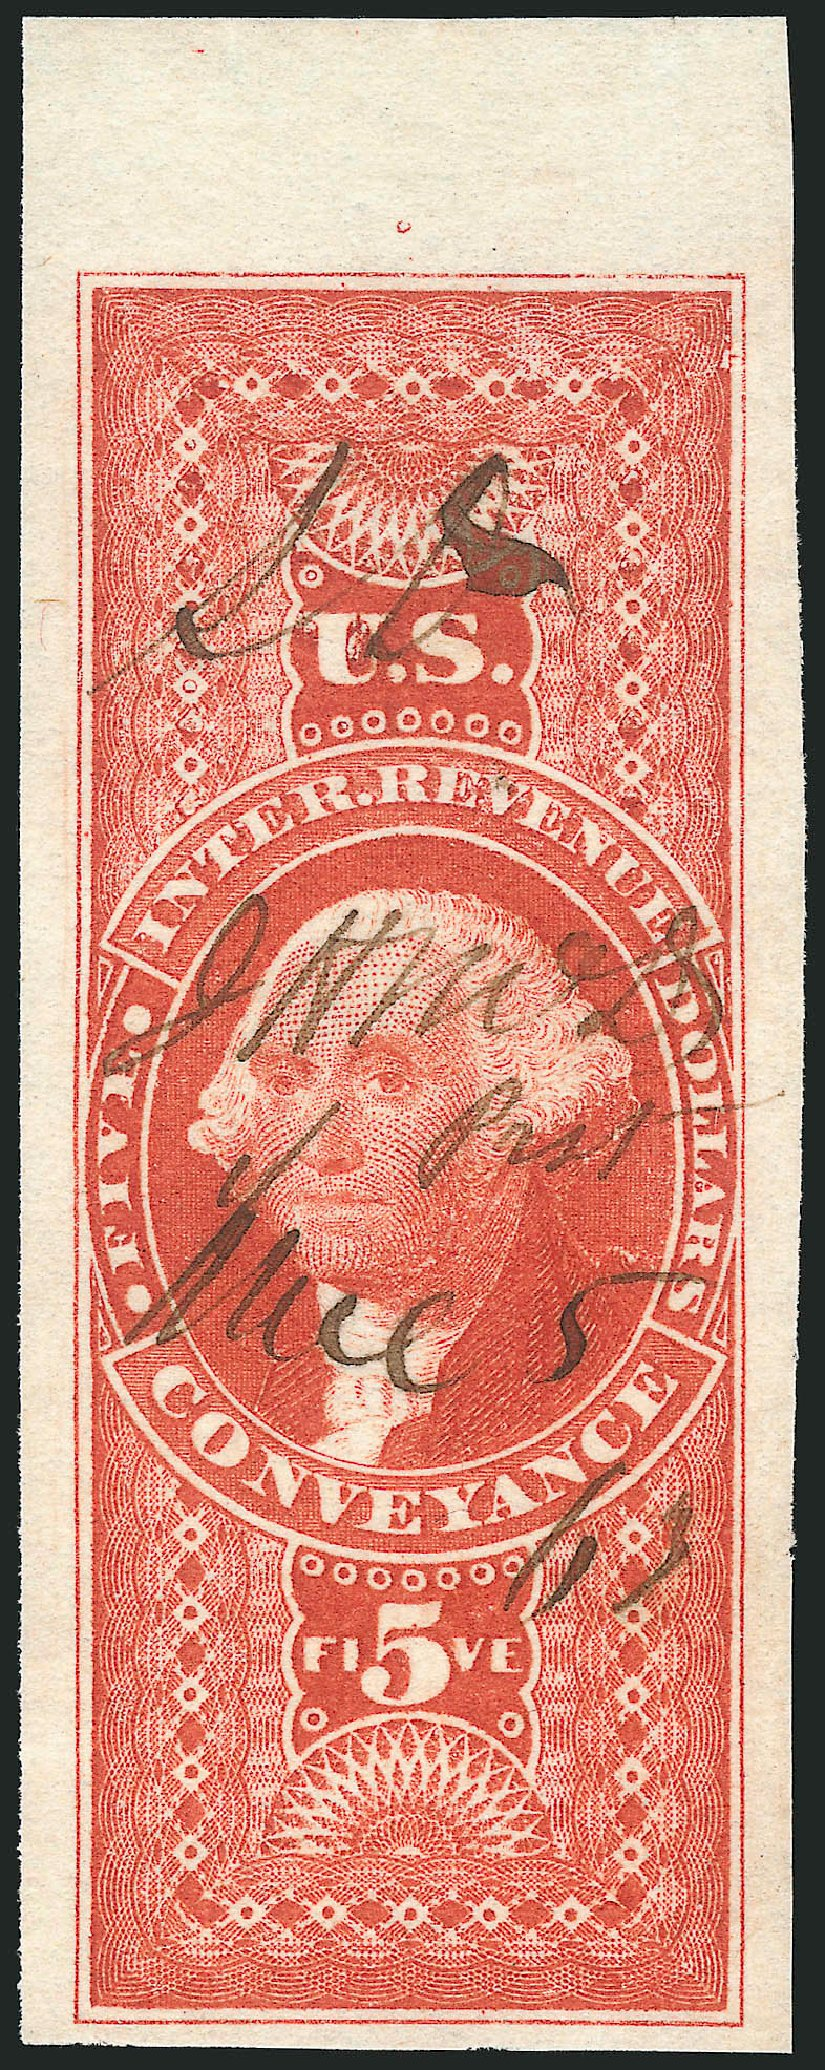 Value of US Stamps Scott #R89 - 1862 US$5.00 Revenue Conveyance. Robert Siegel Auction Galleries, Mar 2014, Sale 1066, Lot 30